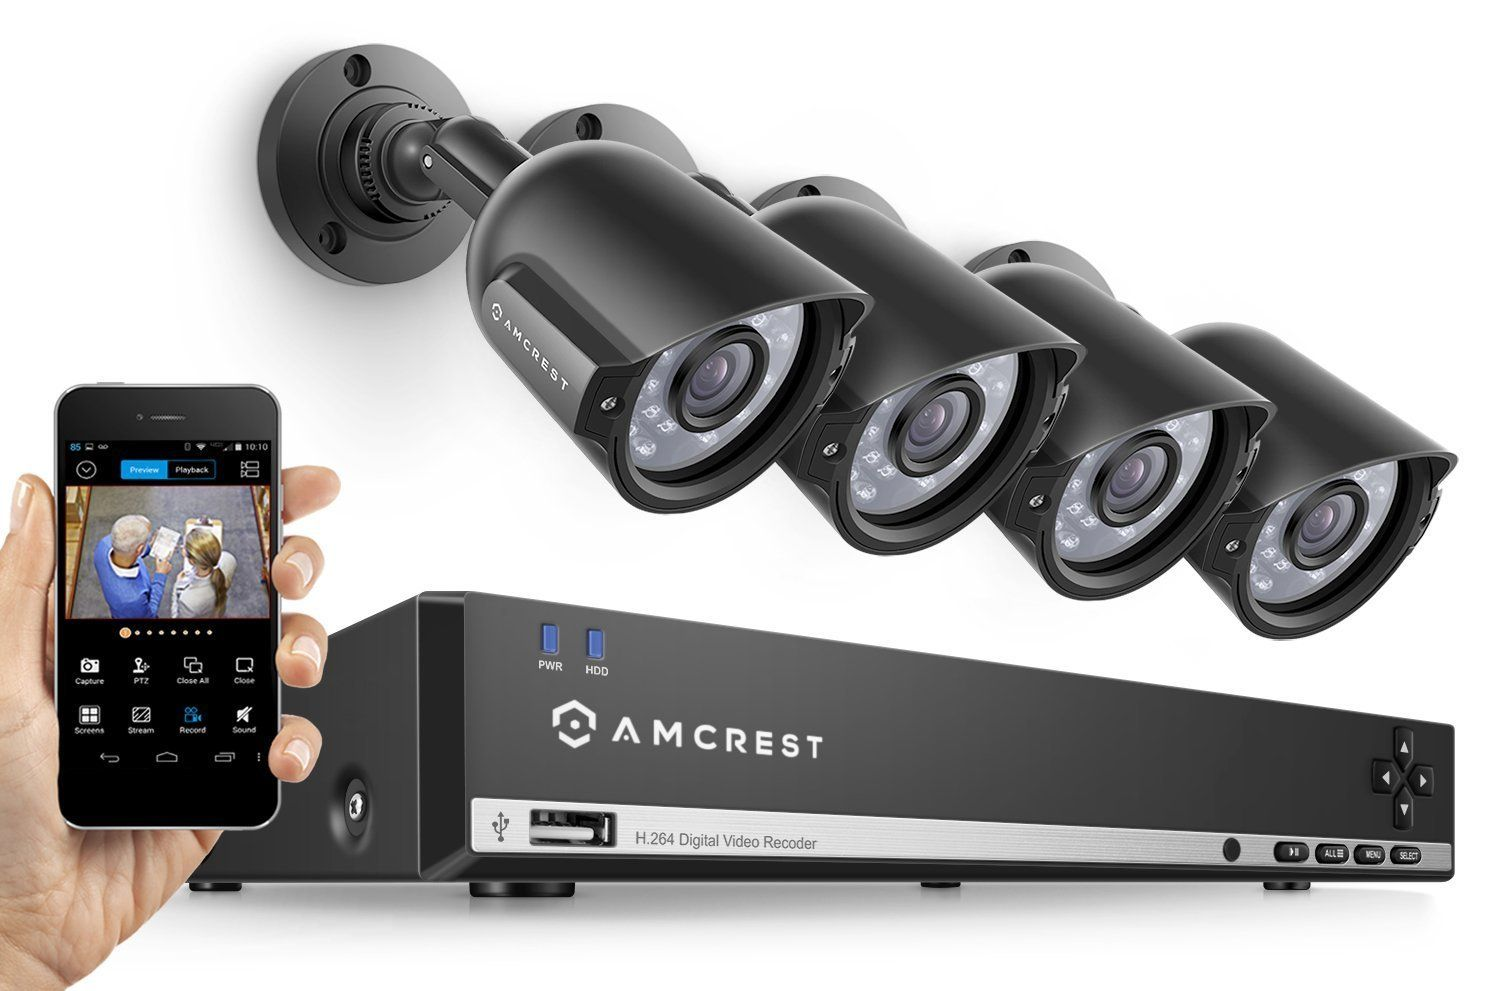 Diy Home Security Camera Reviews Best Wireless Security Camera Systems With Night Vision